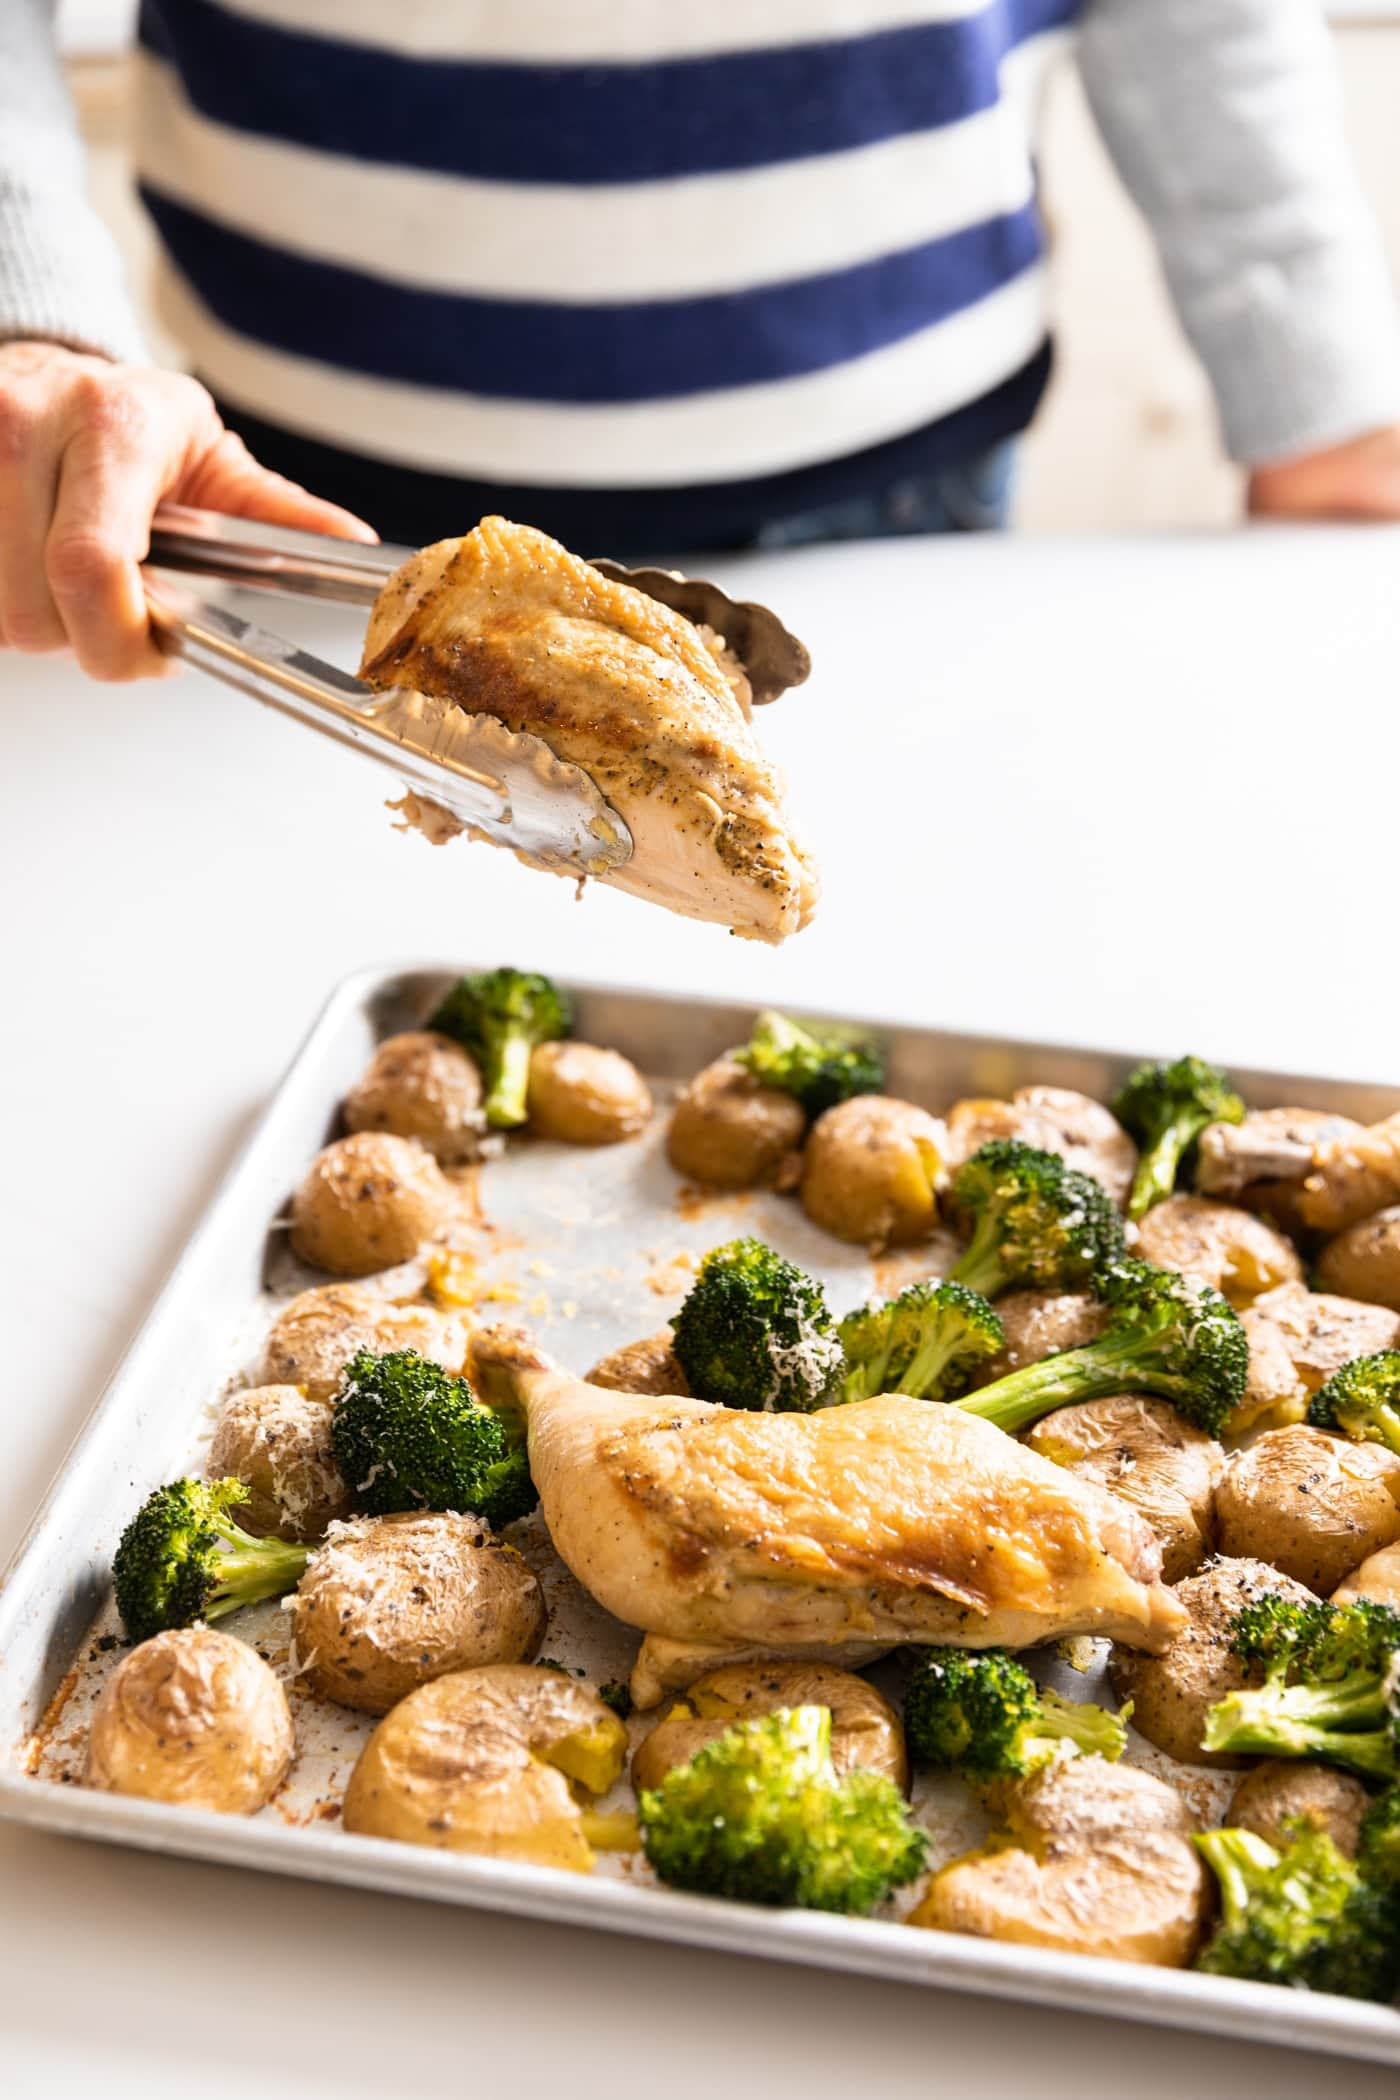 Hand holding roasted chicken breast in tongs over a sheet pan with other chicken breasts and broccoli and potatoes